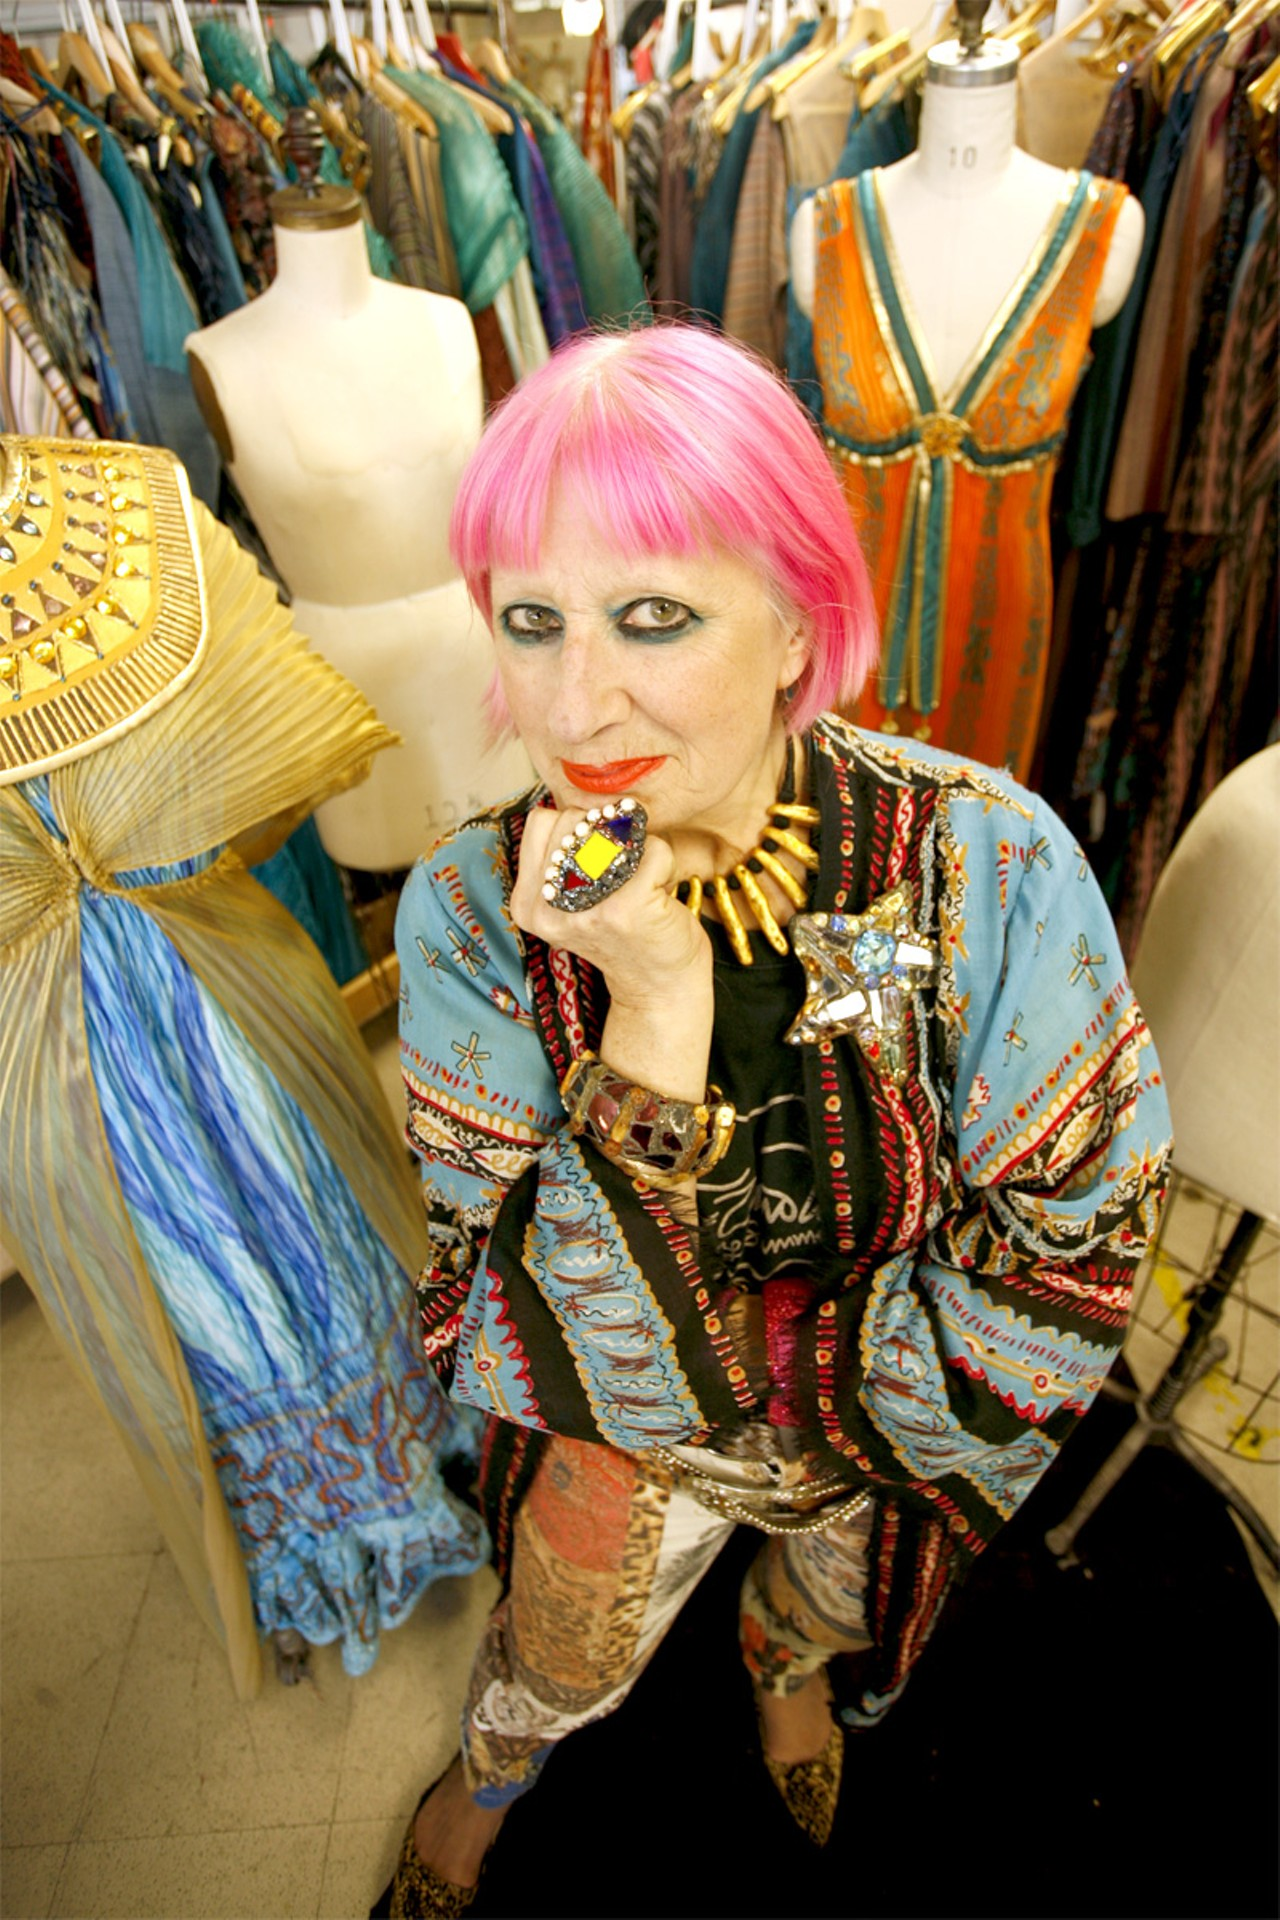 Zandra Rhodes with her costumes for Aida. (Photo by Kelly Nicolaisen)